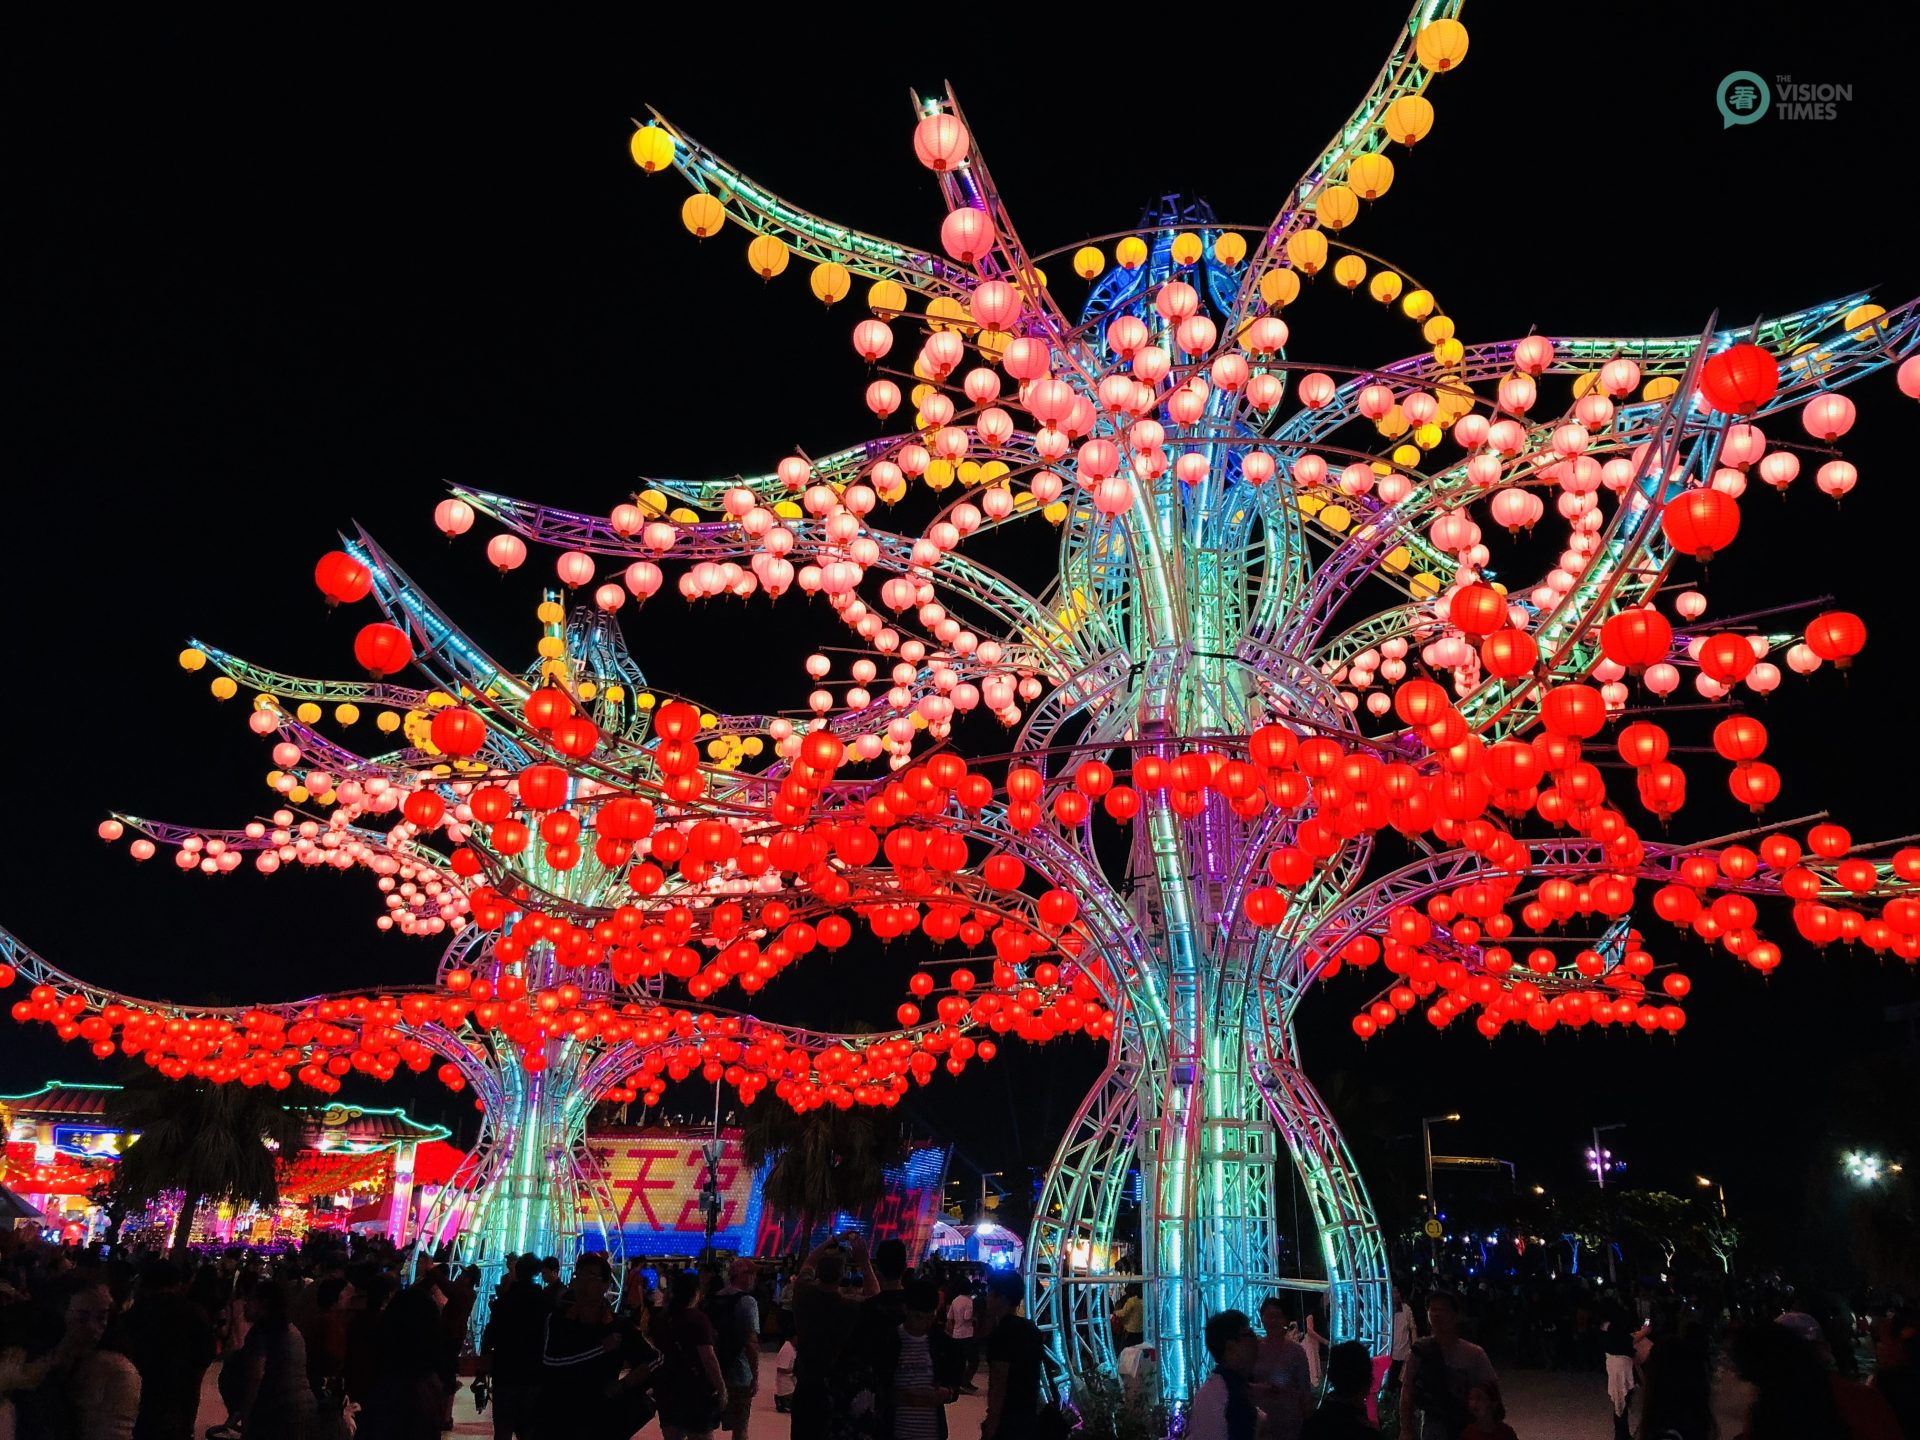 Tree of Life shows the richness of life and the world's prosperity. (Image: Billy Shyu / Vision Times)